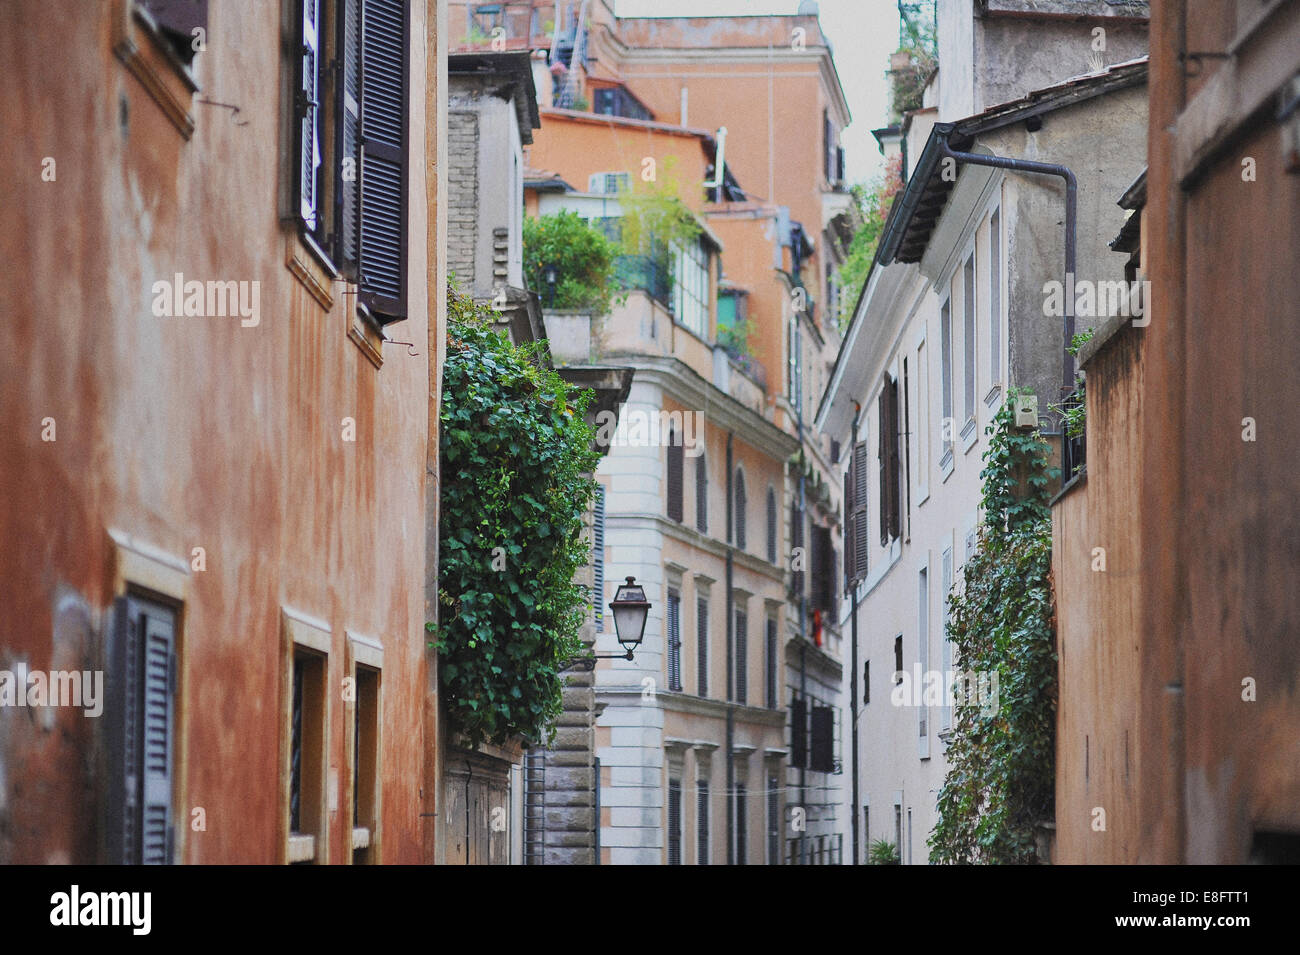 Italy, Rome, Alley in city - Stock Image